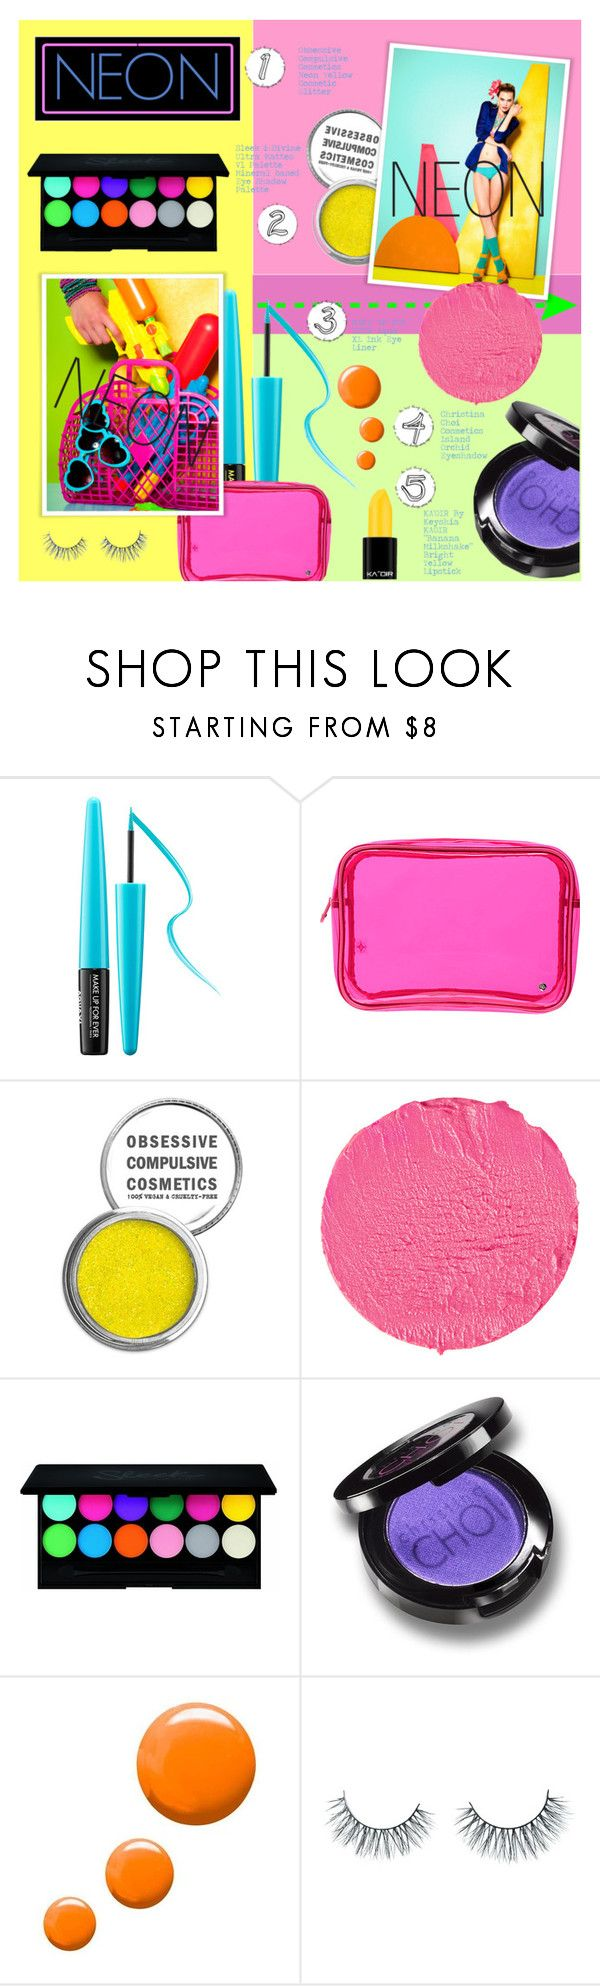 """""""Neon Beauty"""" by arrow1067 ❤ liked on Polyvore featuring beauty, MAKE UP FOR EVER, Stephanie Johnson, Obsessive Compulsive Cosmetics, Givenchy, Christina Choi Cosmetics, Topshop, Unicorn Lashes and neonbeauty"""